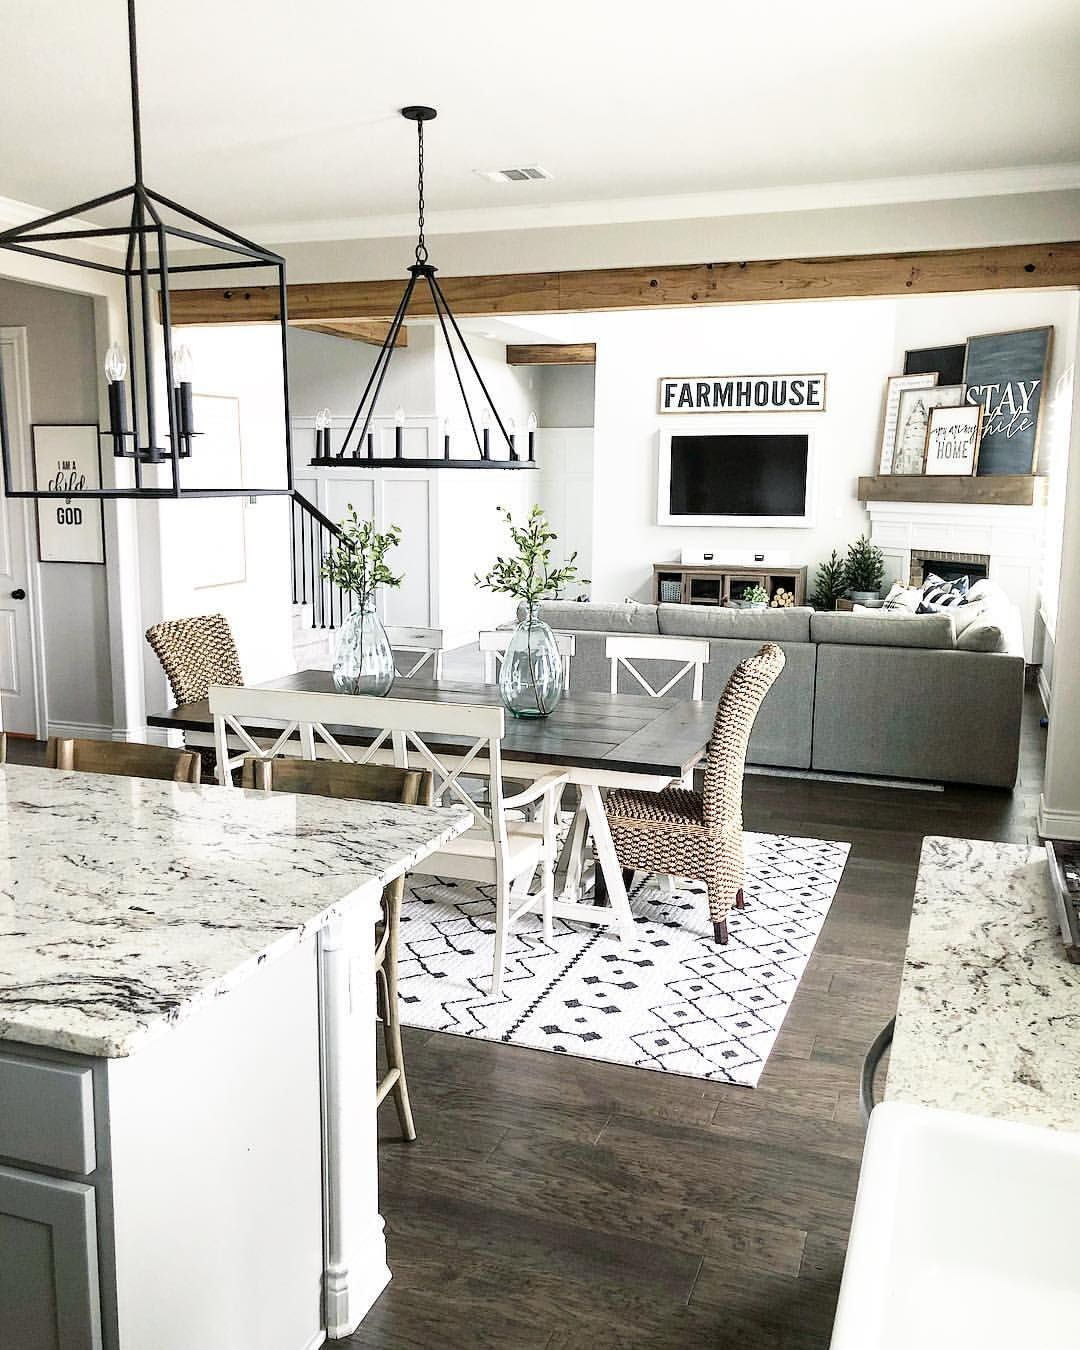 Farmhouse style open layout with kitchen, dining room and ...